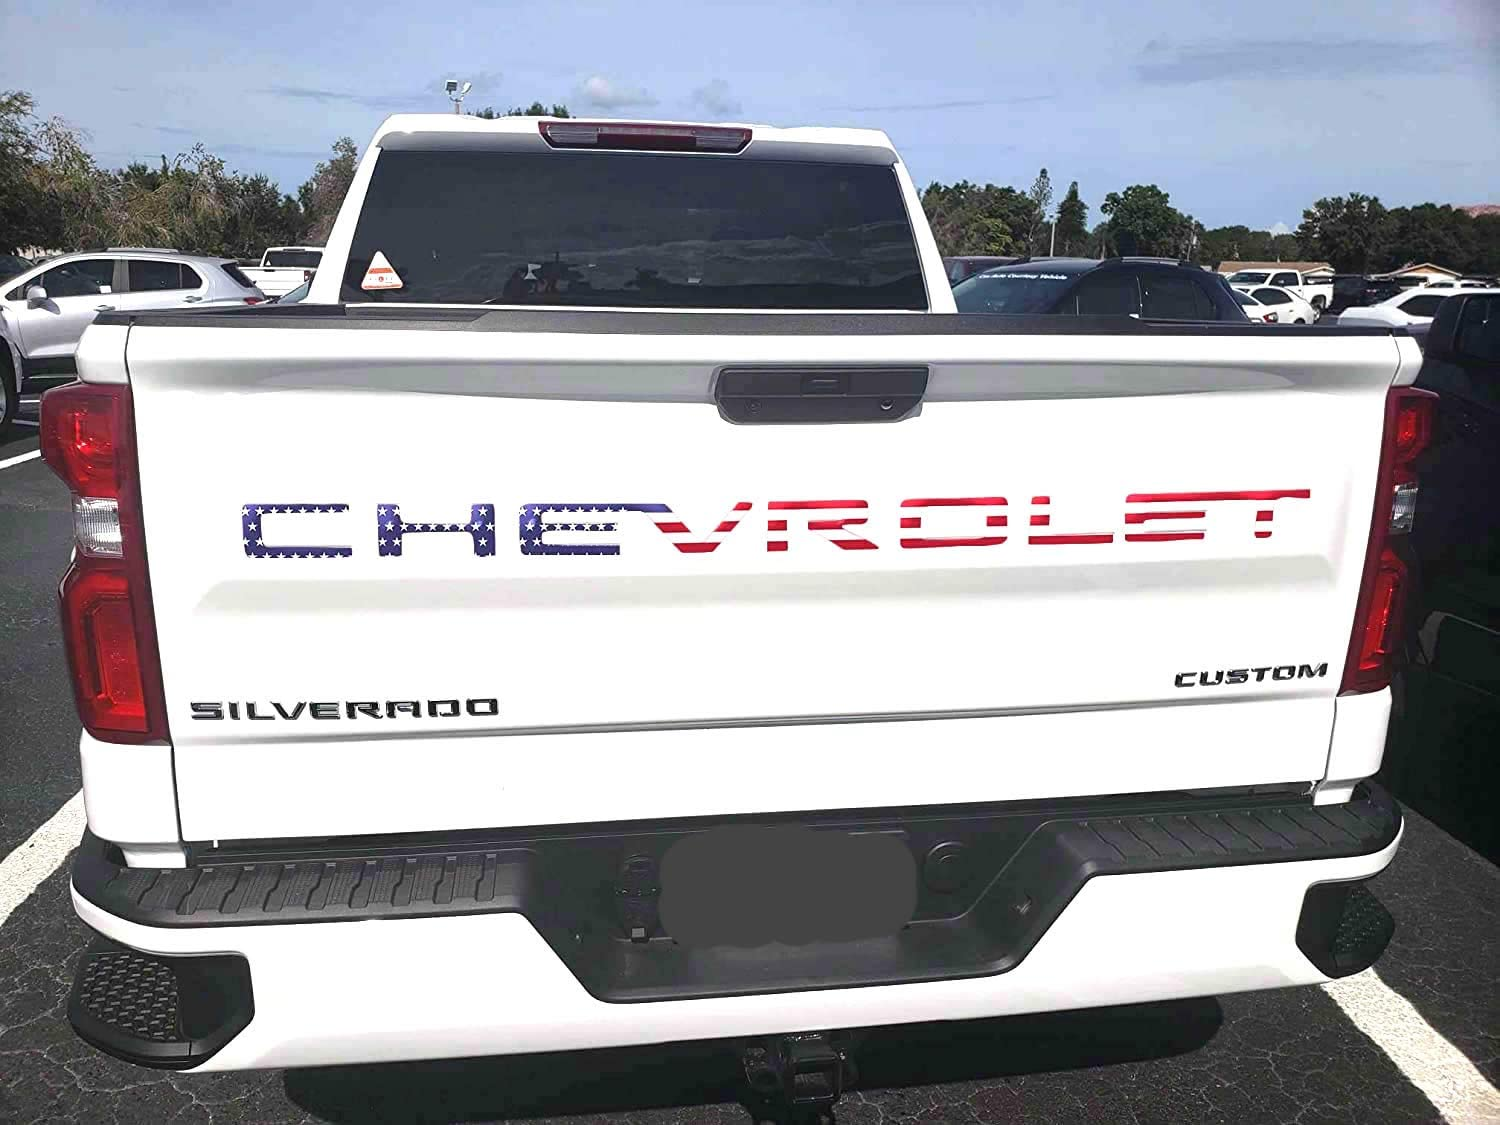 3D Raised /& Strong Adhesive Decals Letters Mr Udinese Tailgate Inserts Letters Compatible with Chevy Silverado American Flag Tailgate Emblems Inserts Letters